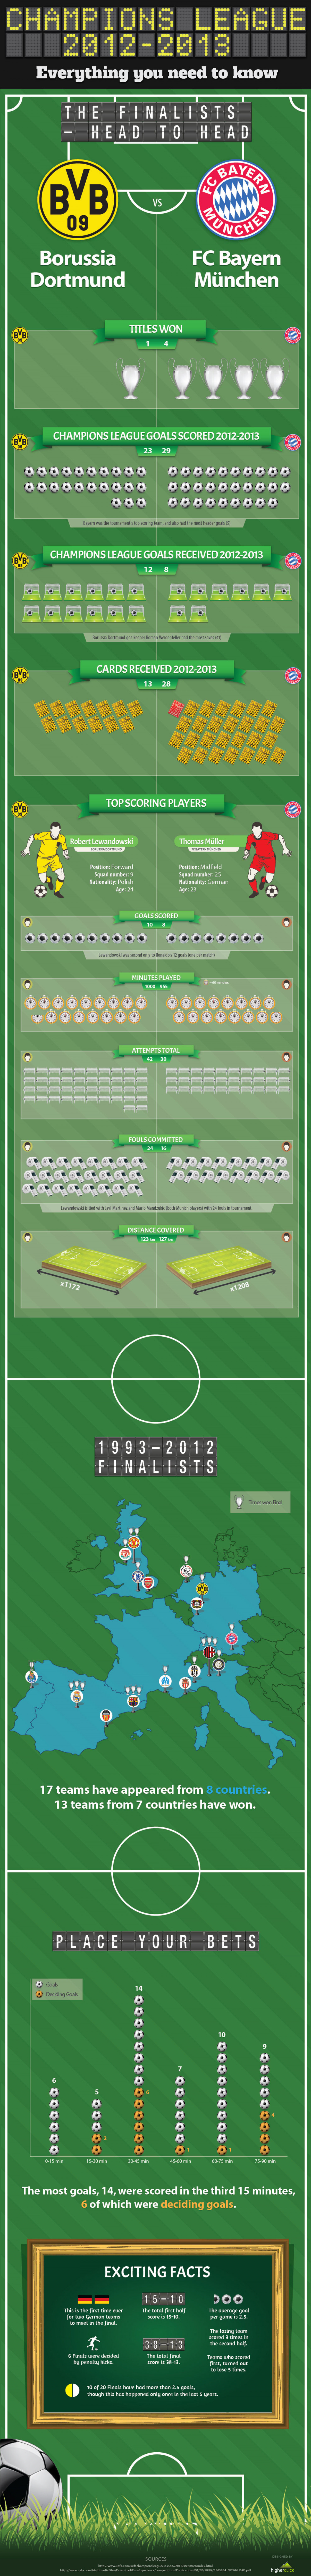 Champions League Final 2013 Infographic